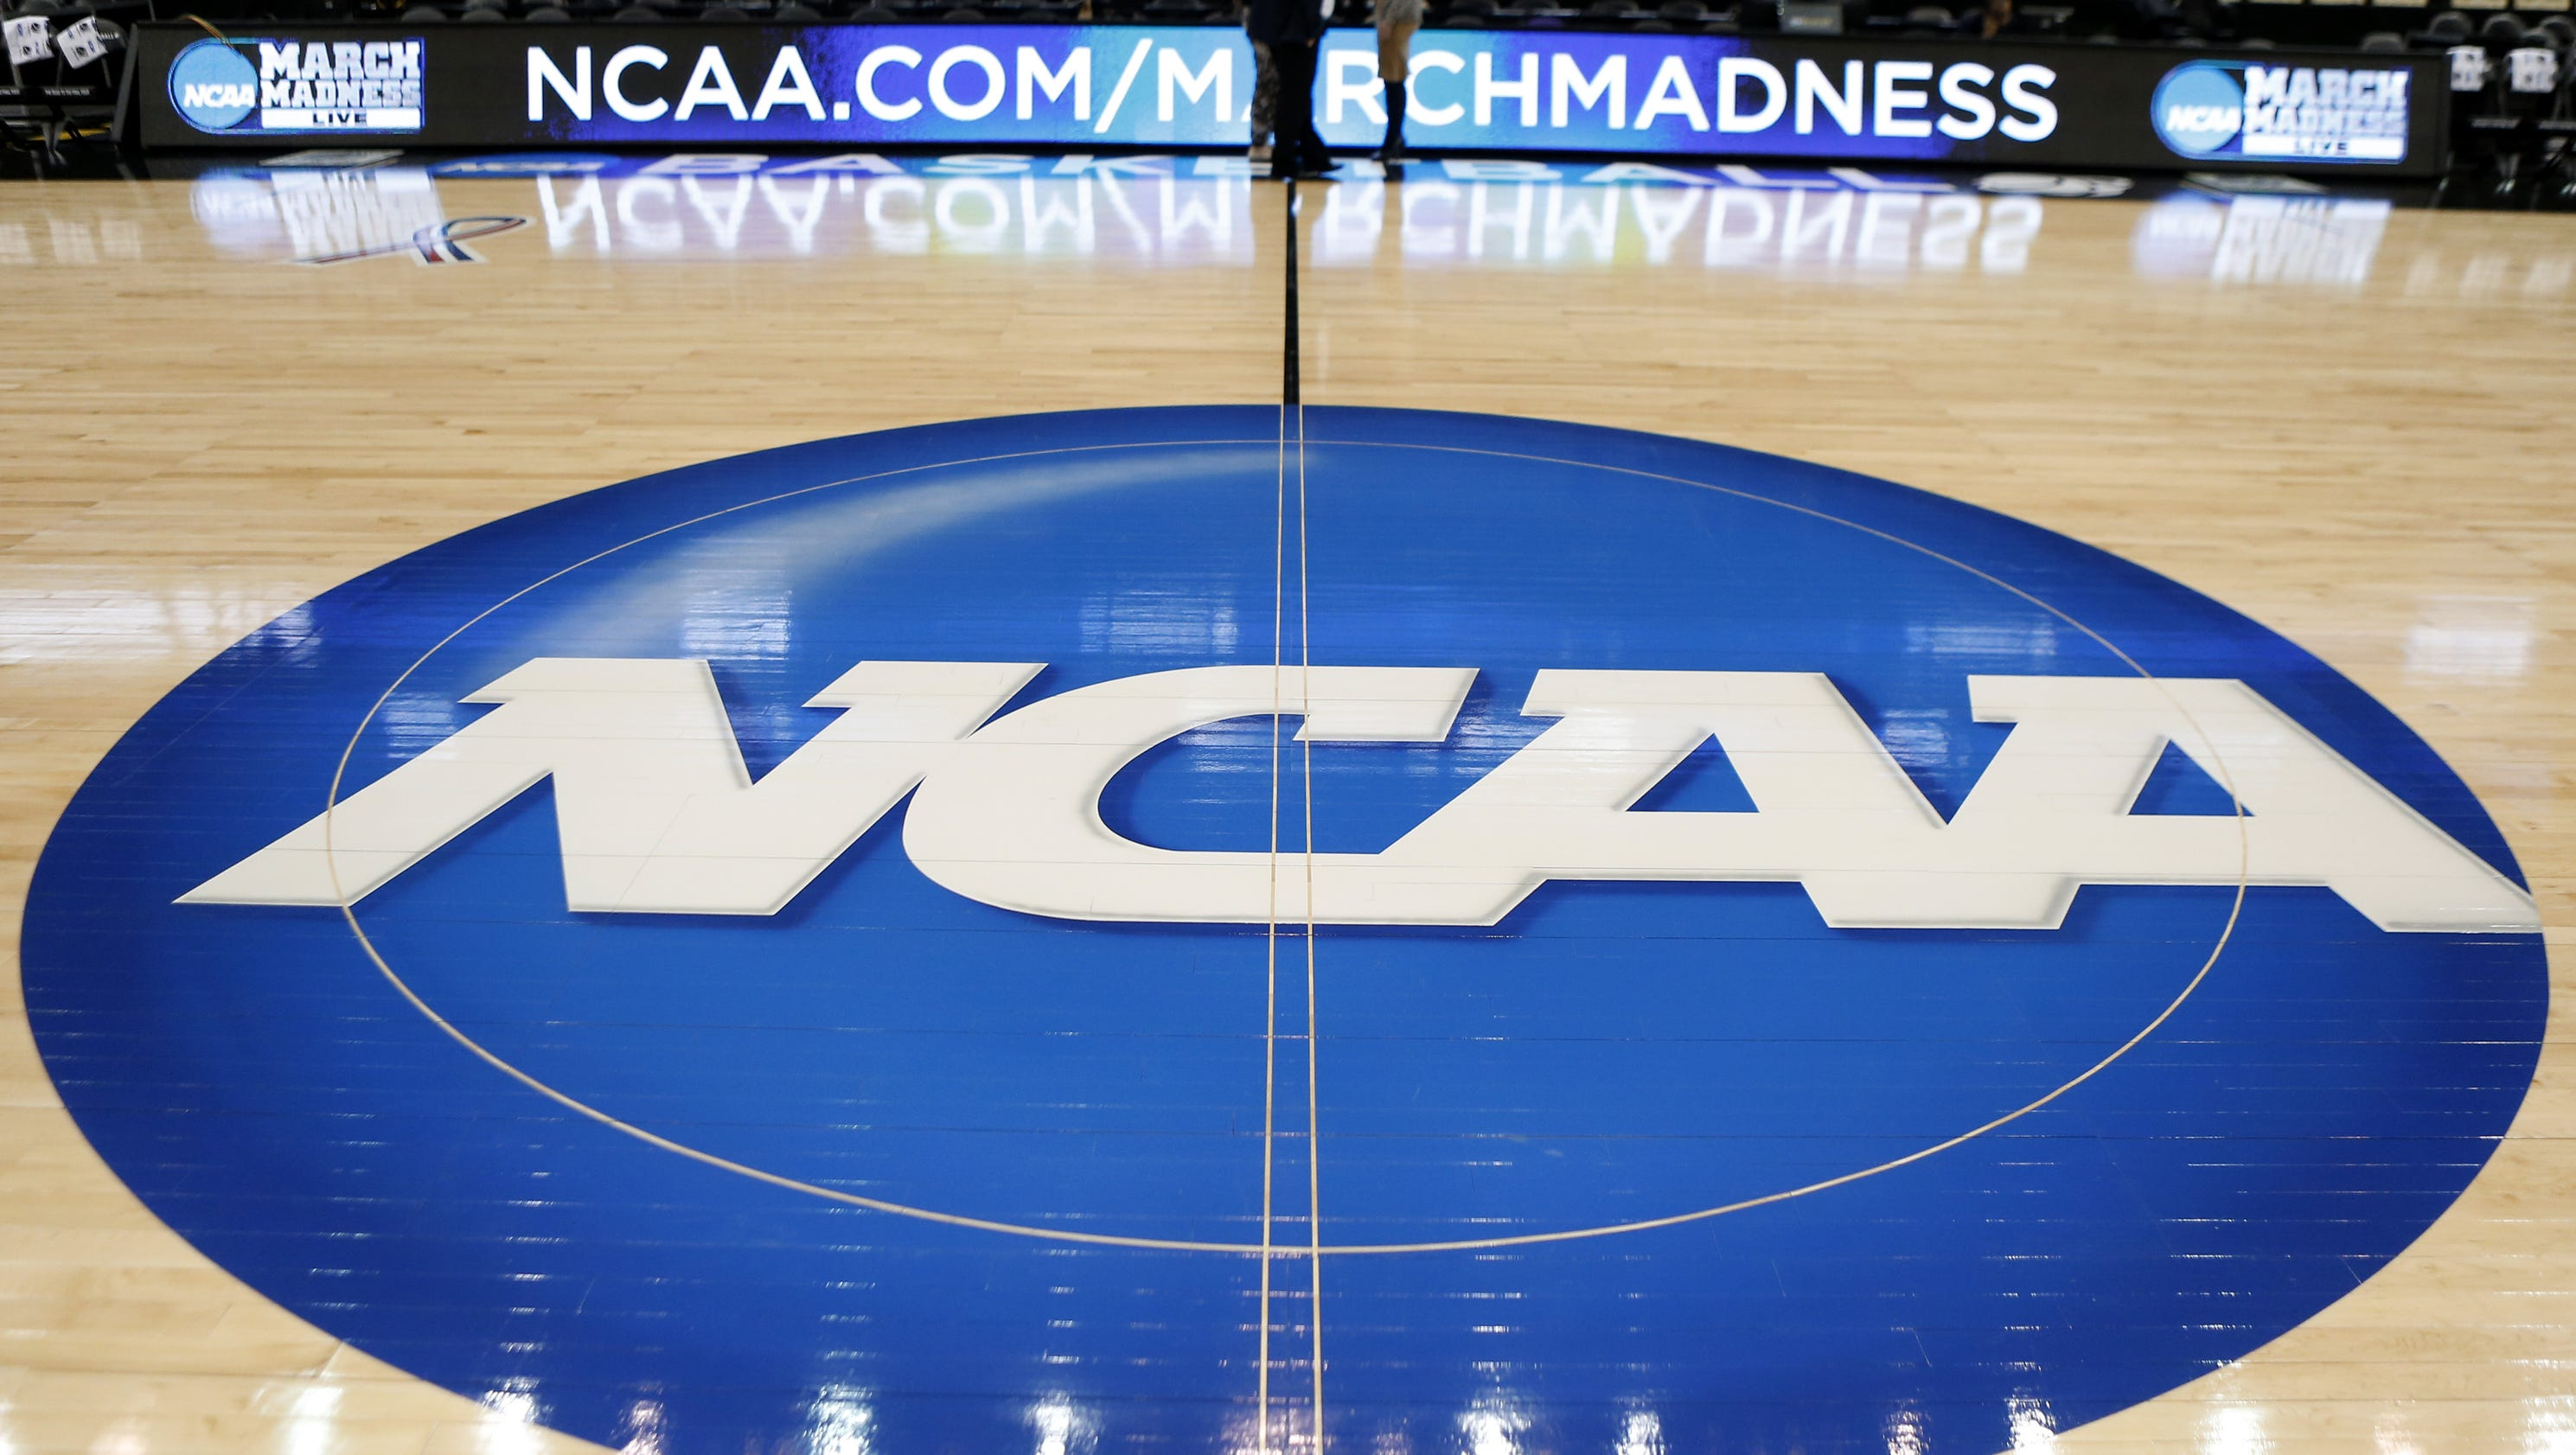 635907064221784044-mgmbrd-01-27-2016-advertiser-1-c002-2016-01-26-img-ncaa-concussion-laws-11-1-gjd9aqoe-l750515000-img-ncaa-concussion-laws-11-1-gjd9aqoe-1-